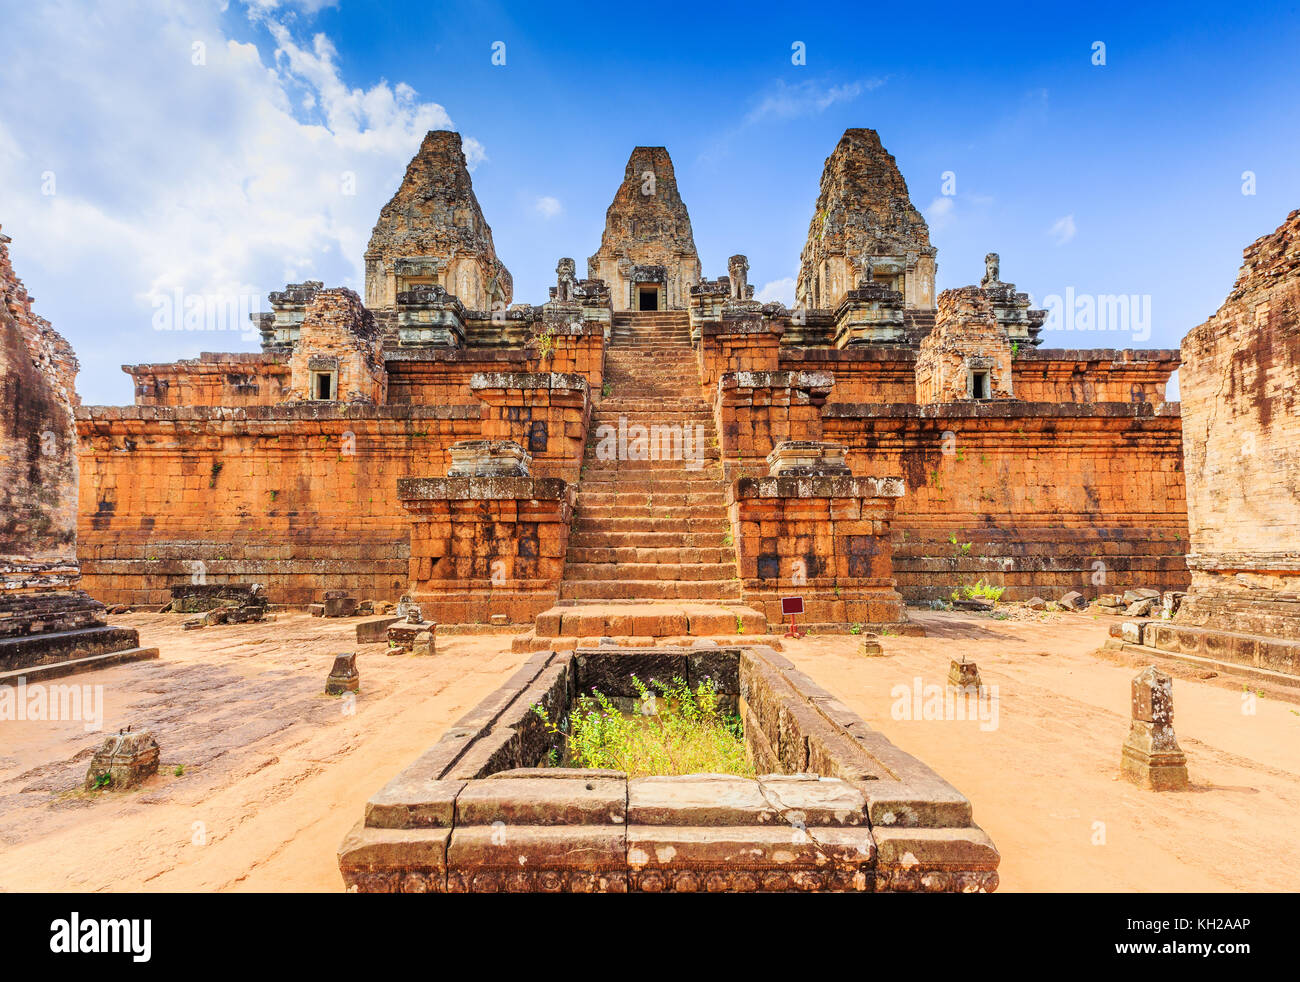 Angkor, Cambodia. Pre Rup temple. The cistern and central towers. - Stock Image